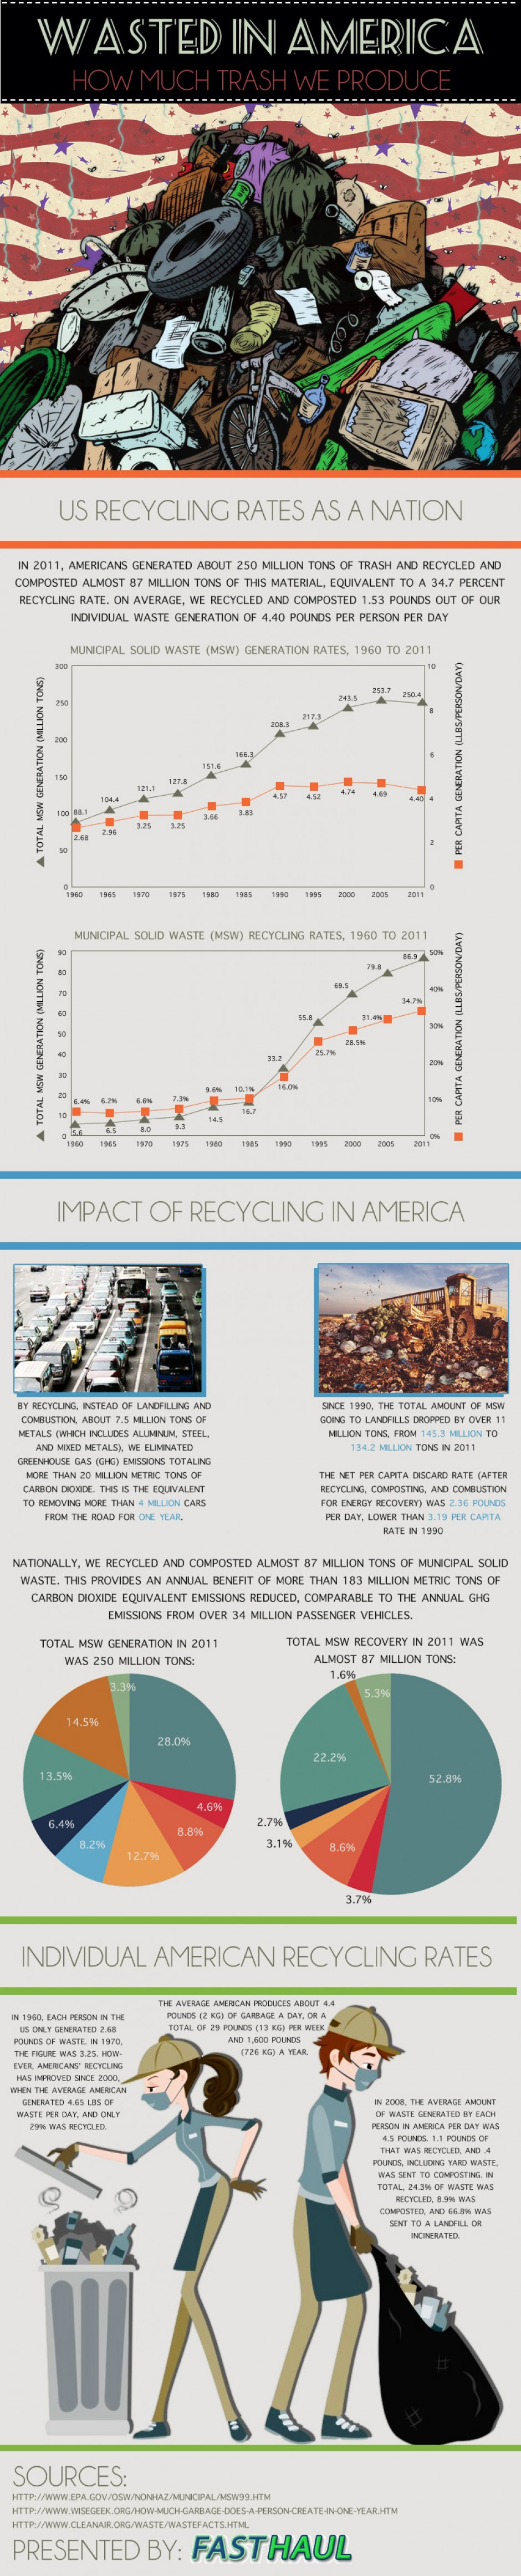 1stack information graphics recycling facts